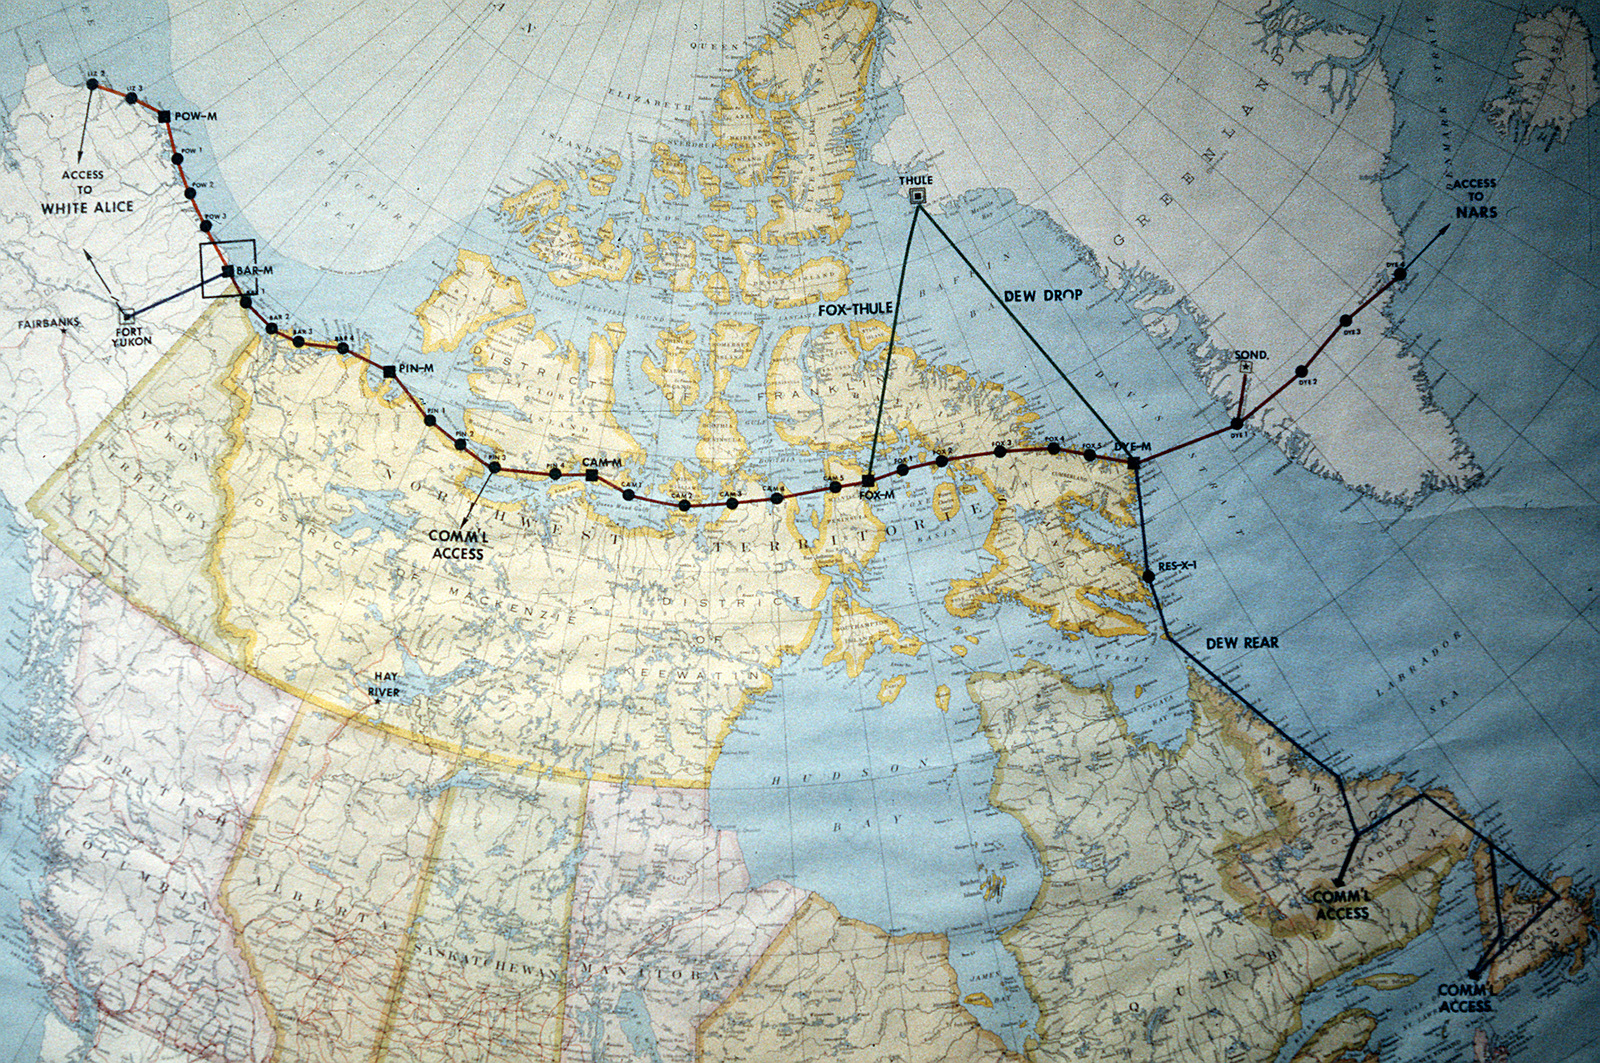 A map of North America near the Arctic Circle showing 30 radar sites spread out along the Distant Early Warning (DEW) Line. Running from Alaska, across Northern Canada to Greenland, the line is approximately 3,600 miles long